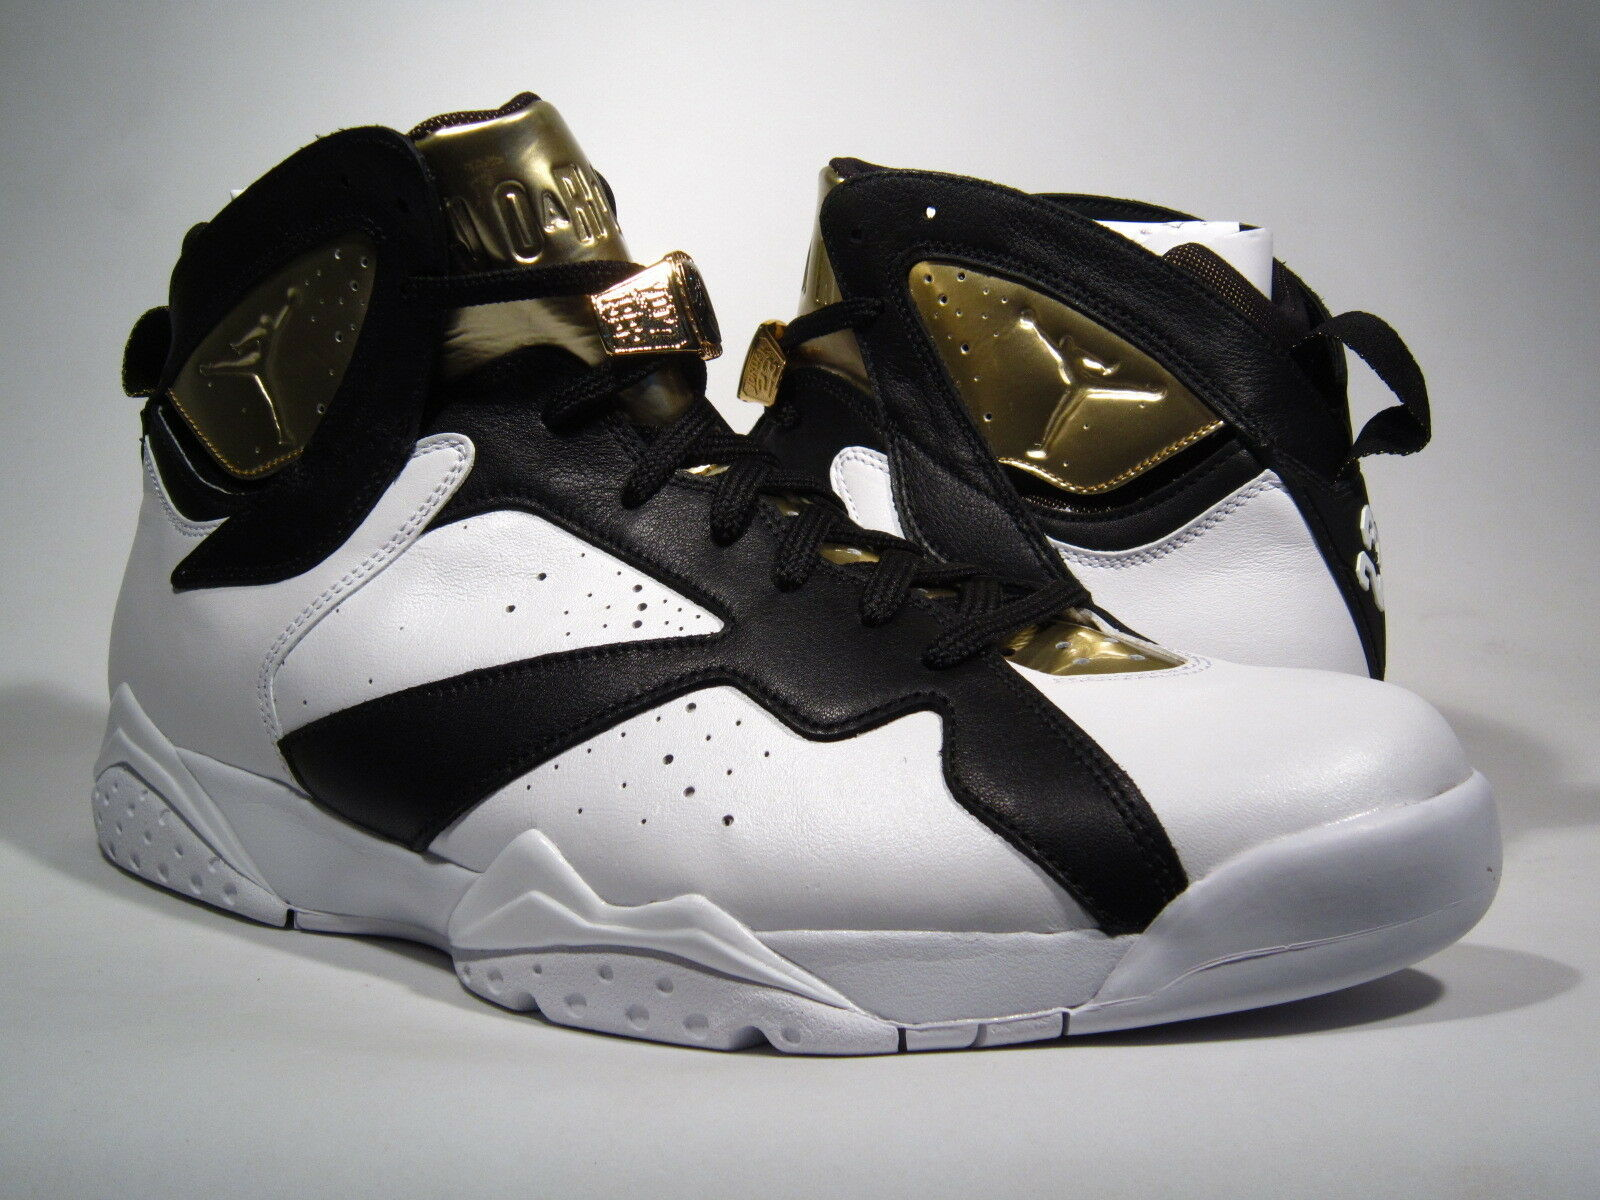 BRAND NEW AIR JORDAN RETRO 7 CHAMPAGNE PACK MEN'S 8-14LIMITED RELEASE cigar